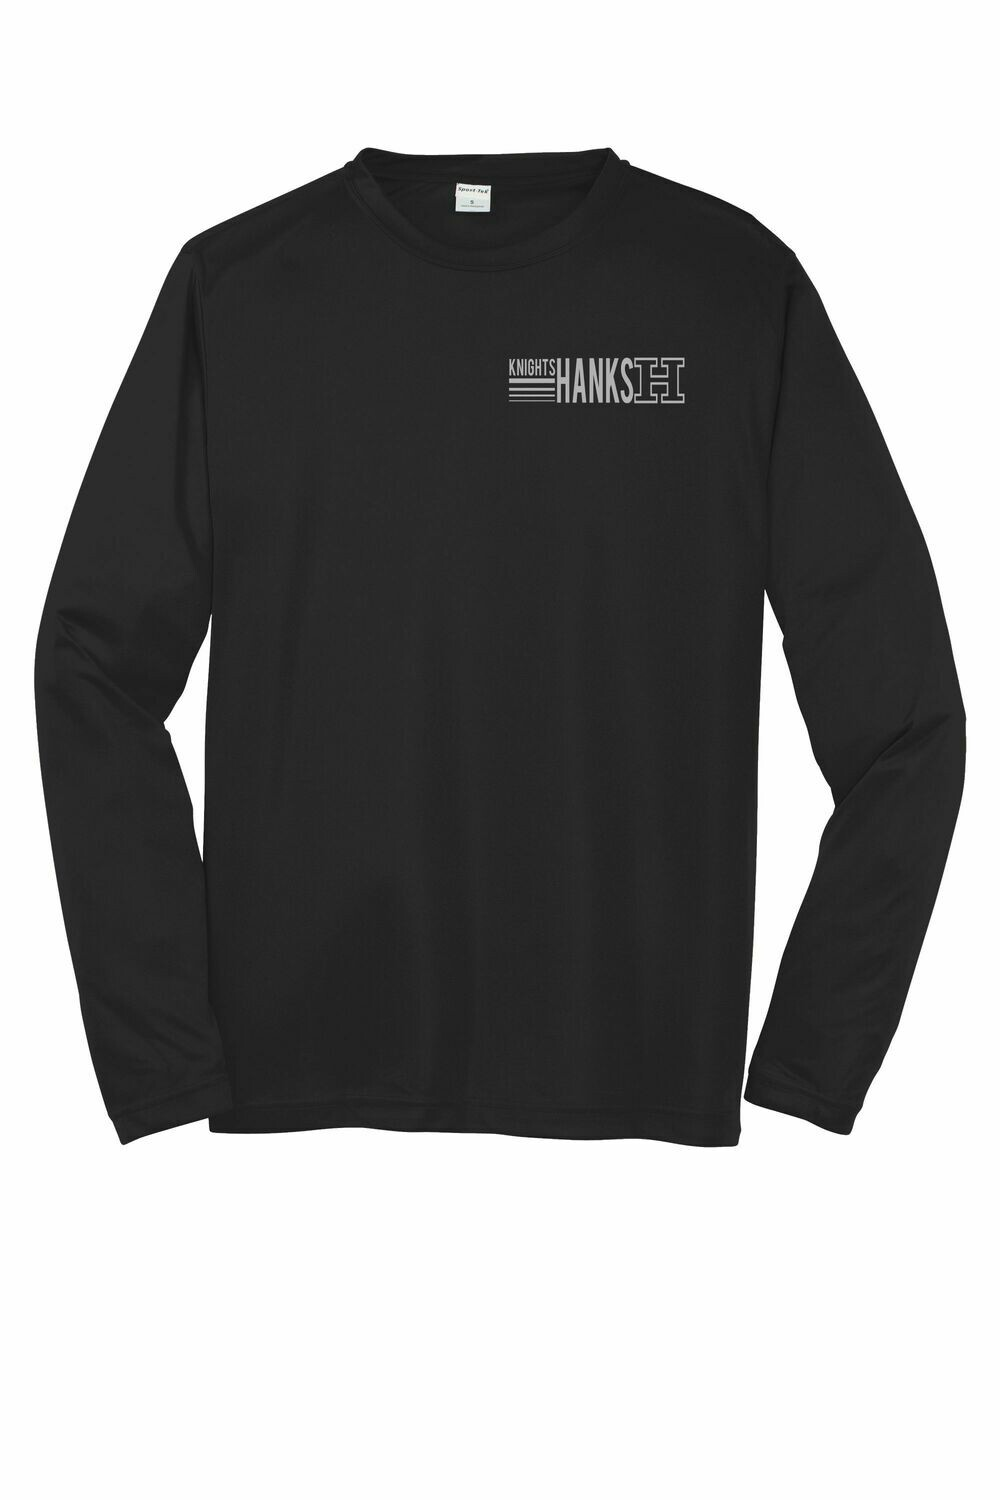 NEW! Line Logo Adult Moisture Wicking Long Sleeve